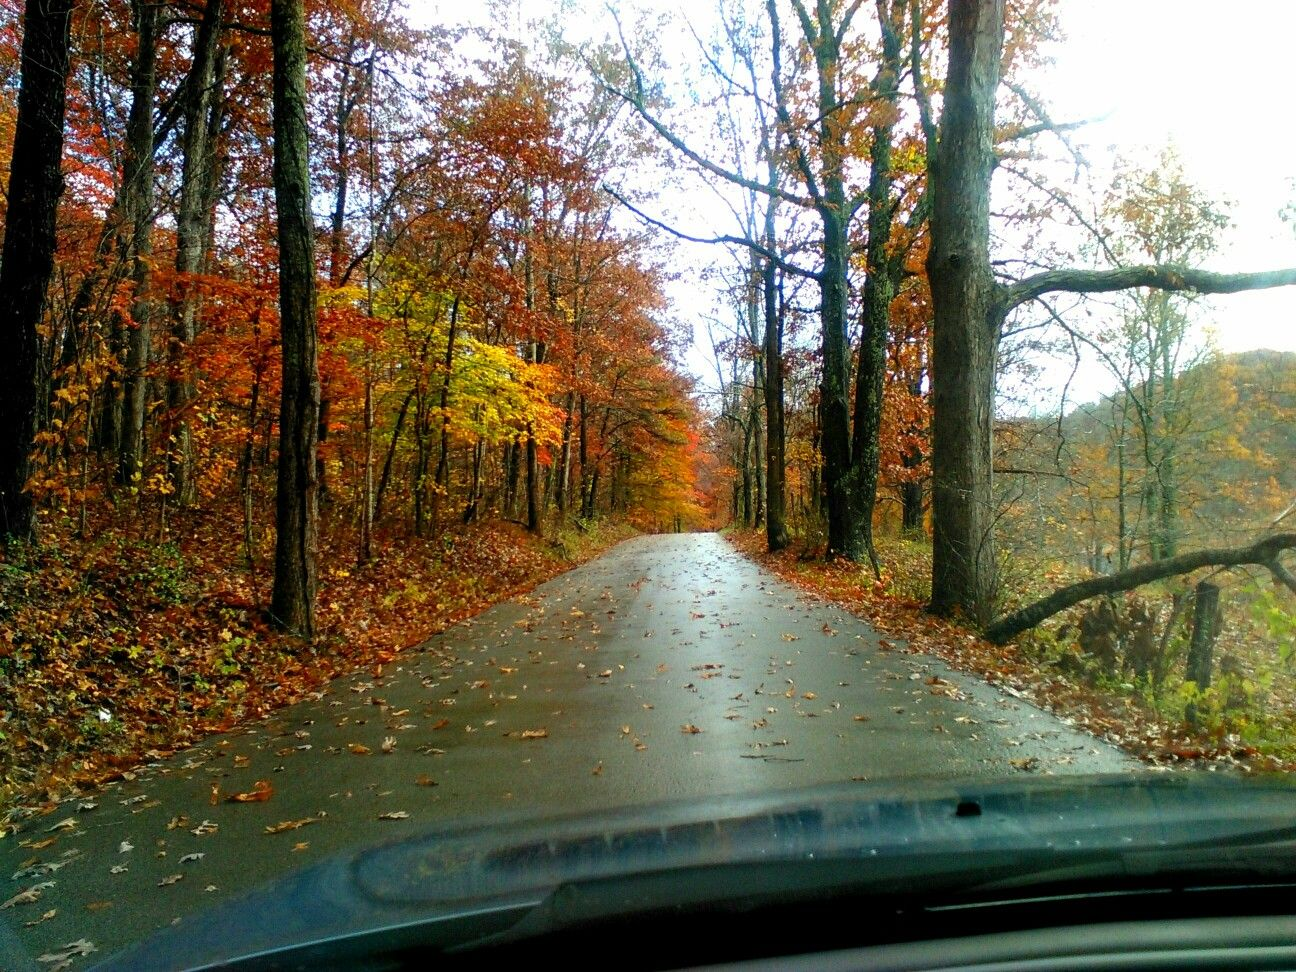 Autumn in ol Kentucky is so beautiful